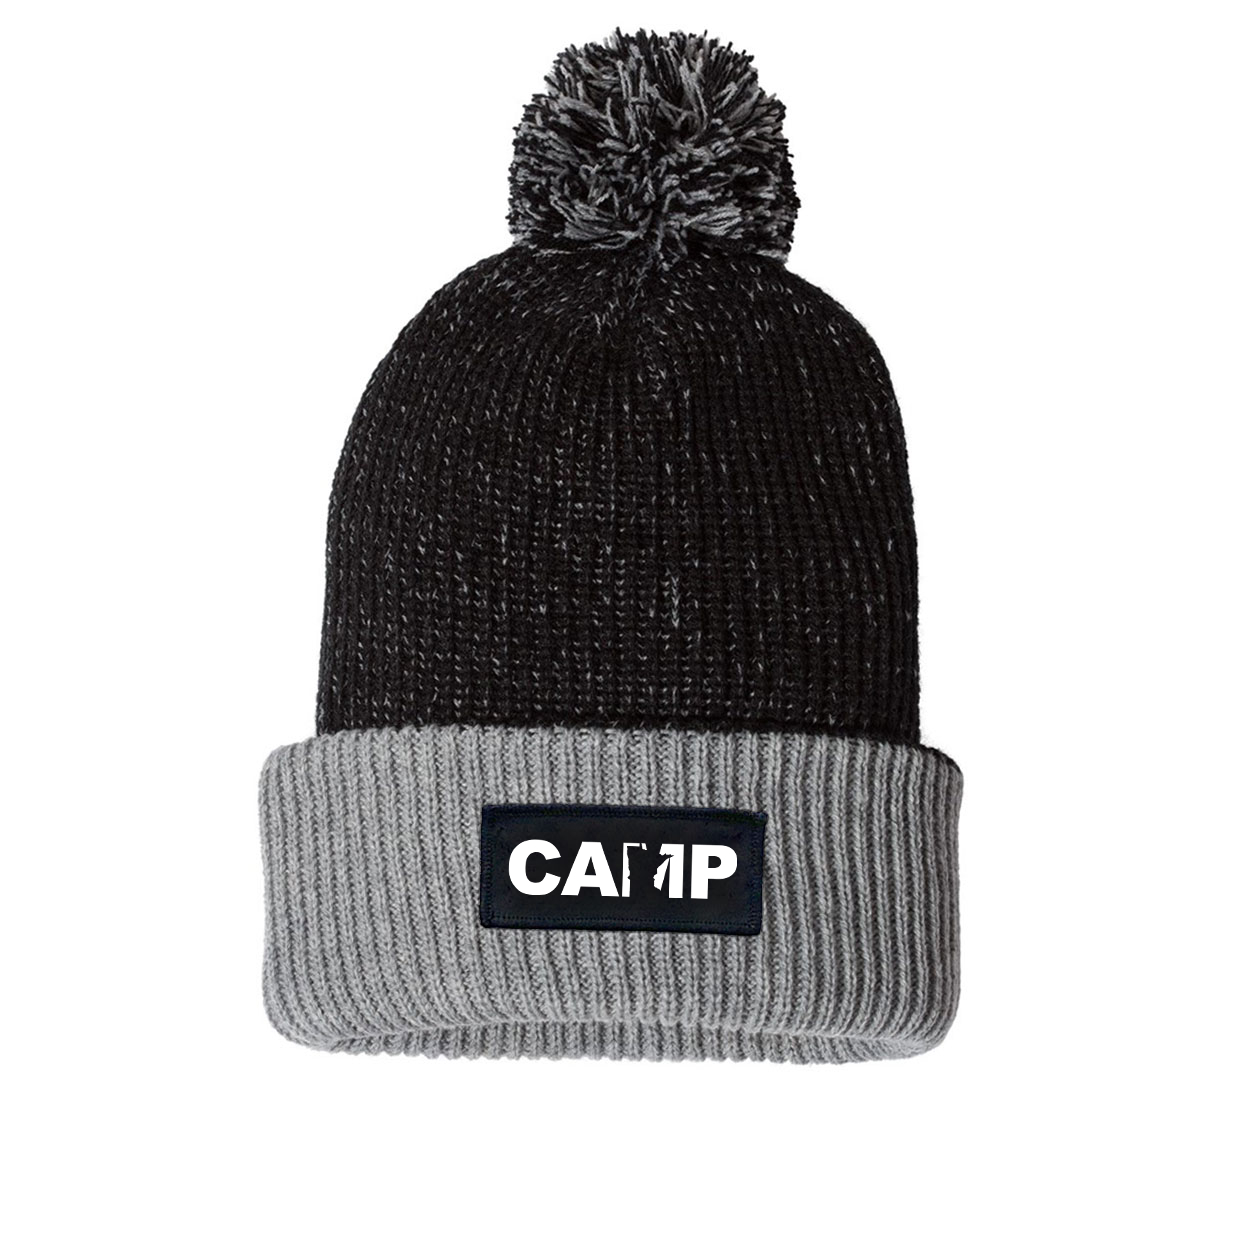 Camp Minnesota Night Out Woven Patch Roll Up Pom Knit Beanie Black/Gray (White Logo)